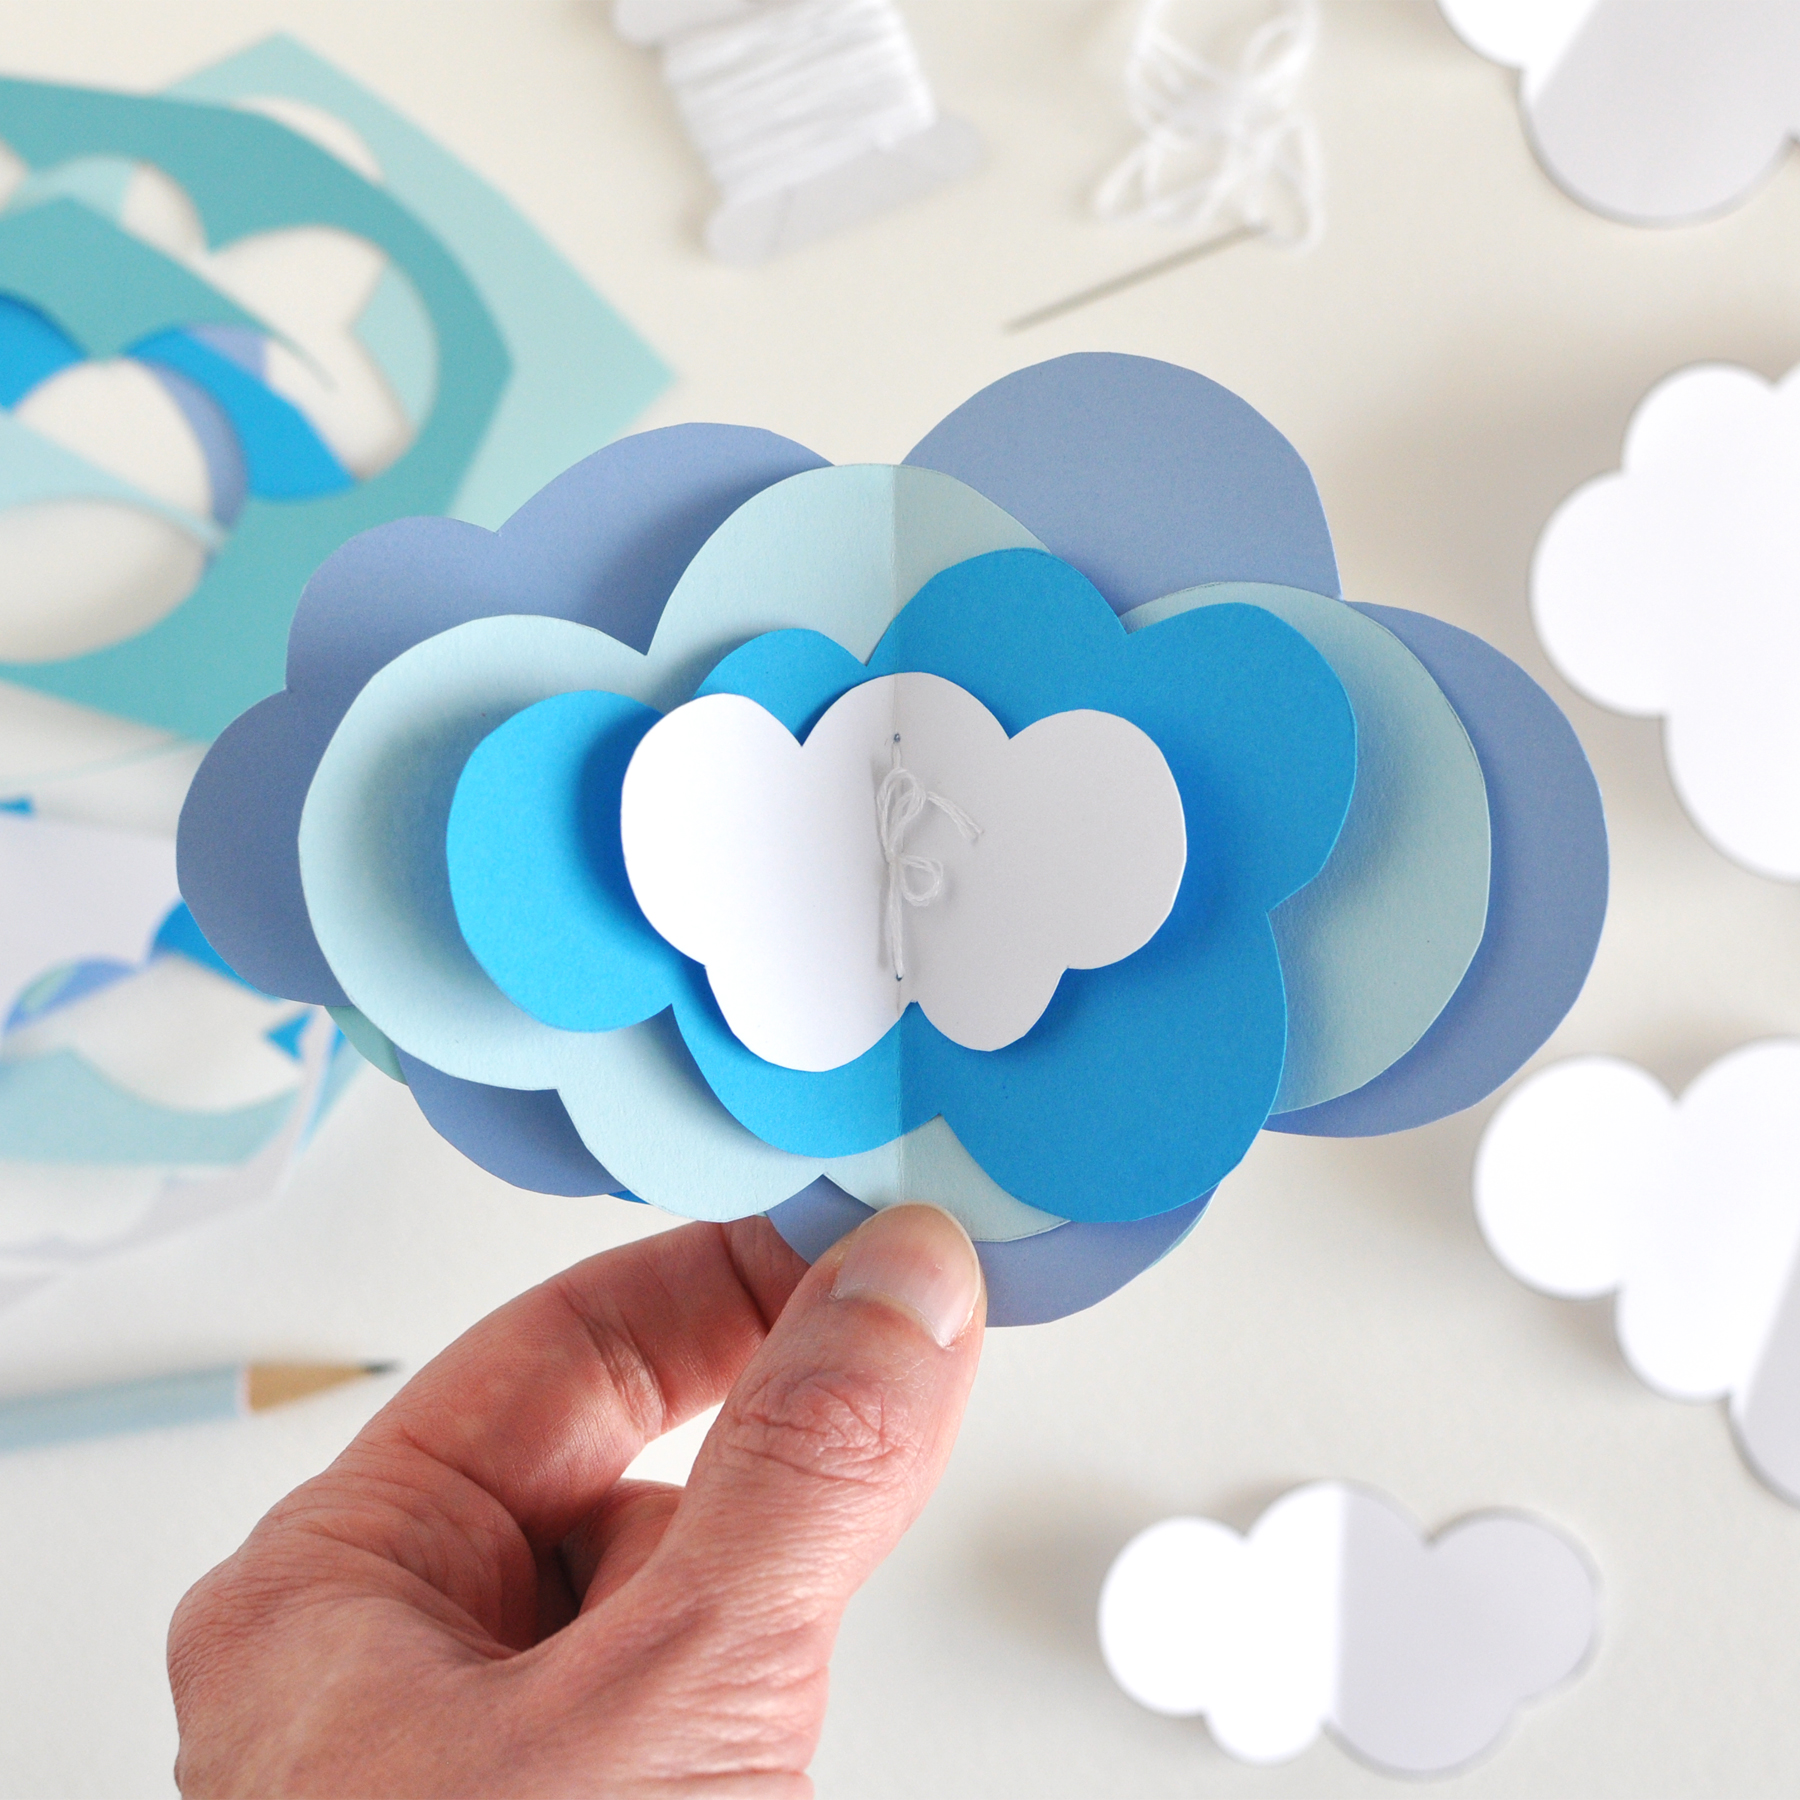 21-05-2019-Handmade-Cloud-Journal-by-Christie-Zimmer.jpg